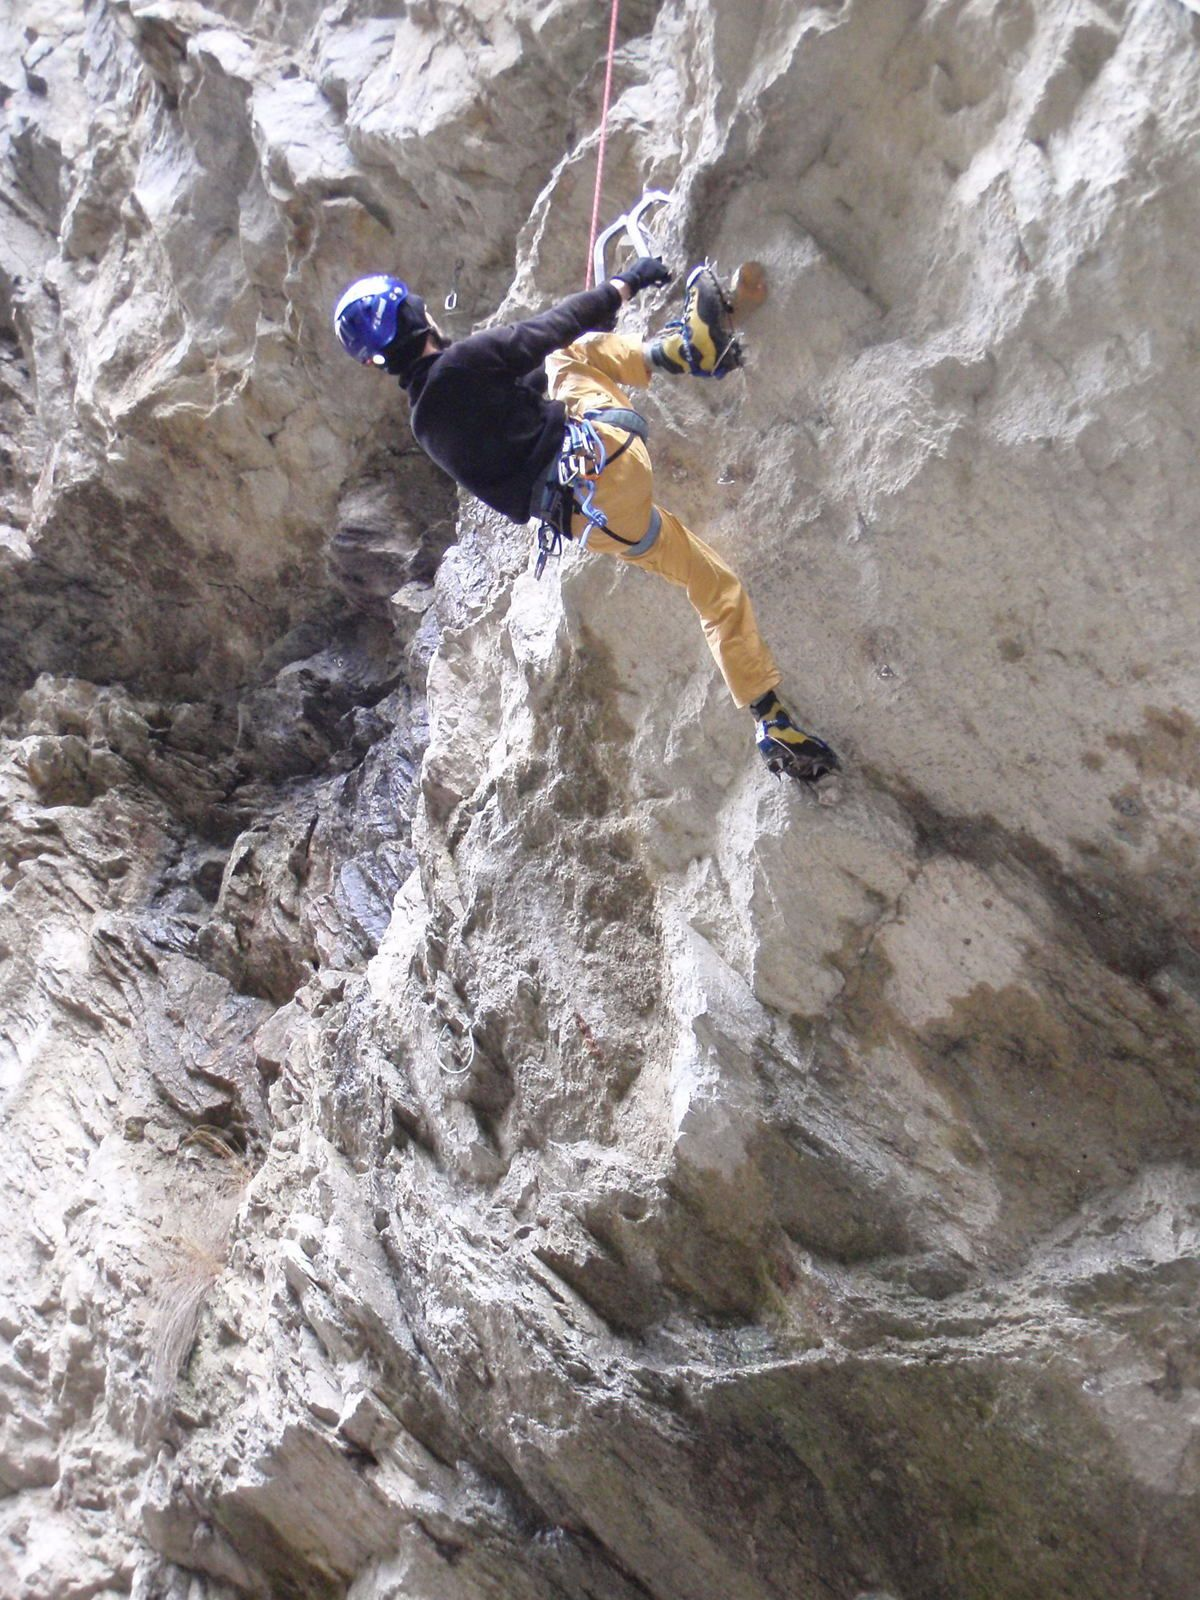 Les Thermes du Fayet; Dry-tooling